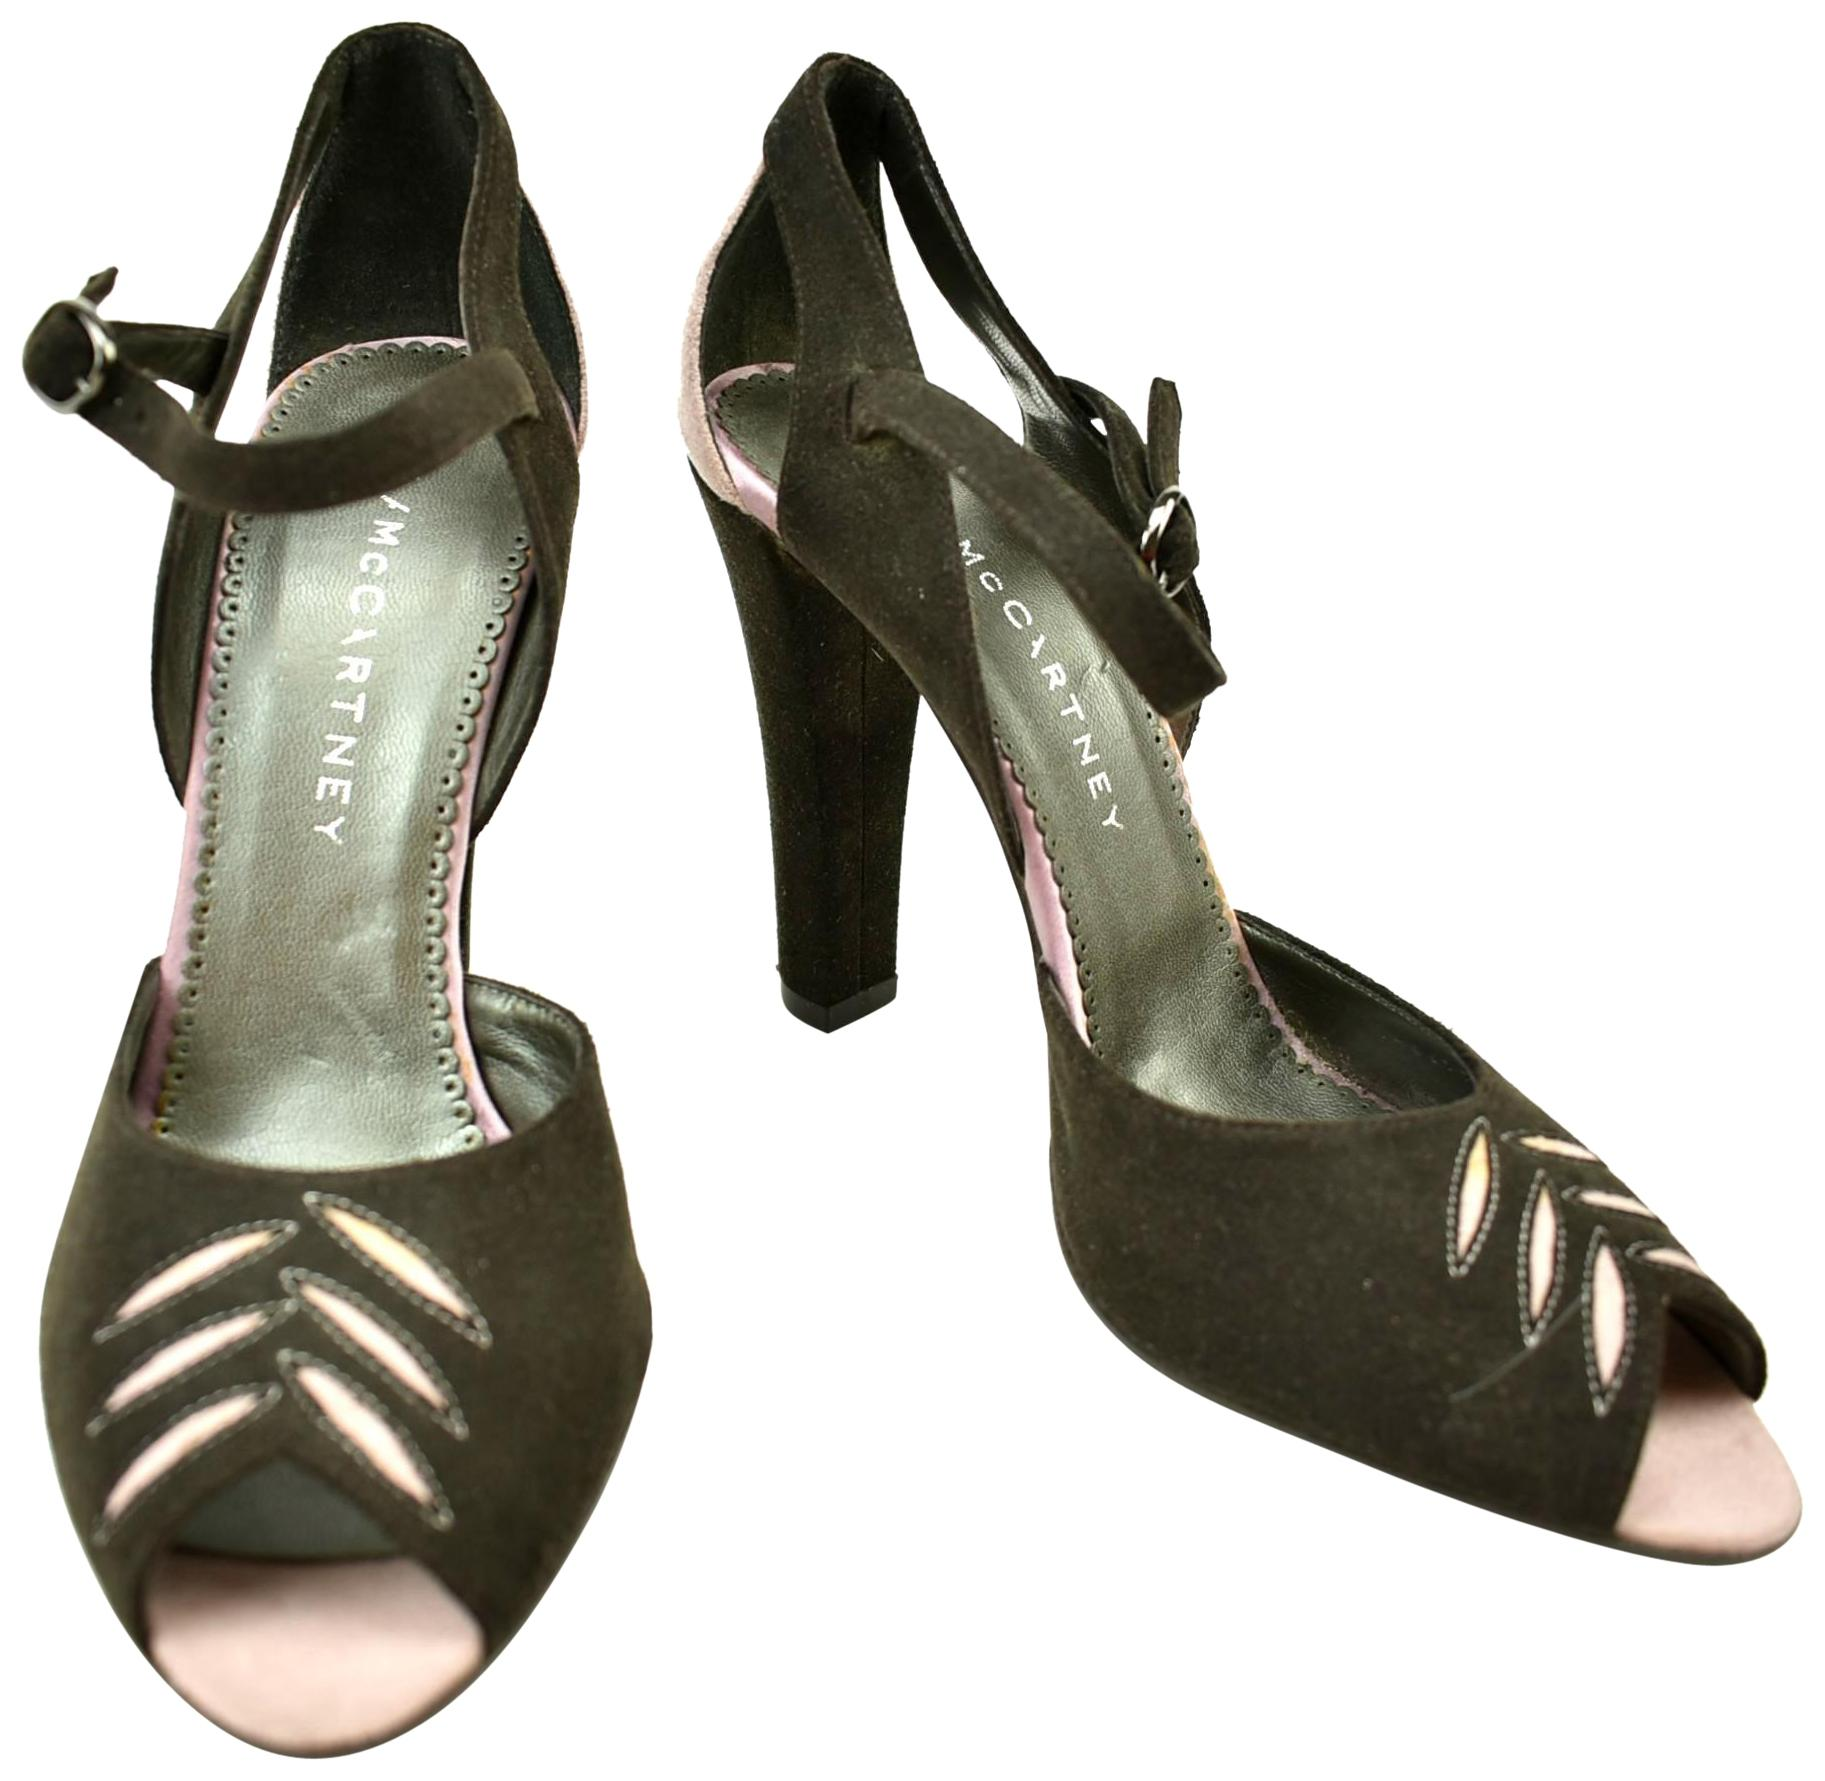 Stella McCartney Vegan Mary Jane Pumps outlet pre order recommend cheap price store sale online cheap view MqYX1J